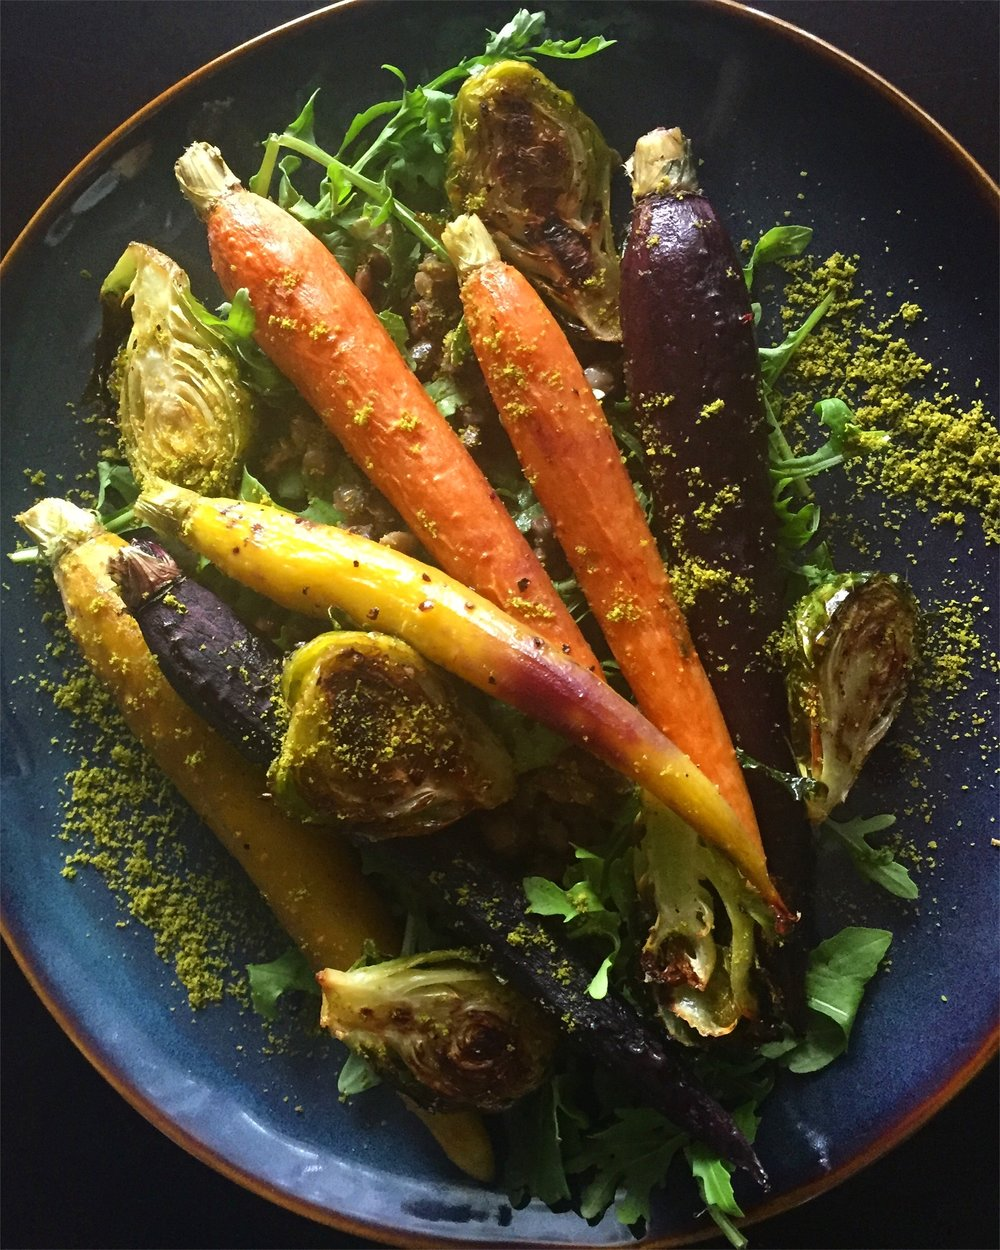 Roasted carrots, brussel sprouts, and lentils on a bed of arugula. Sprinkled with leek brioche.